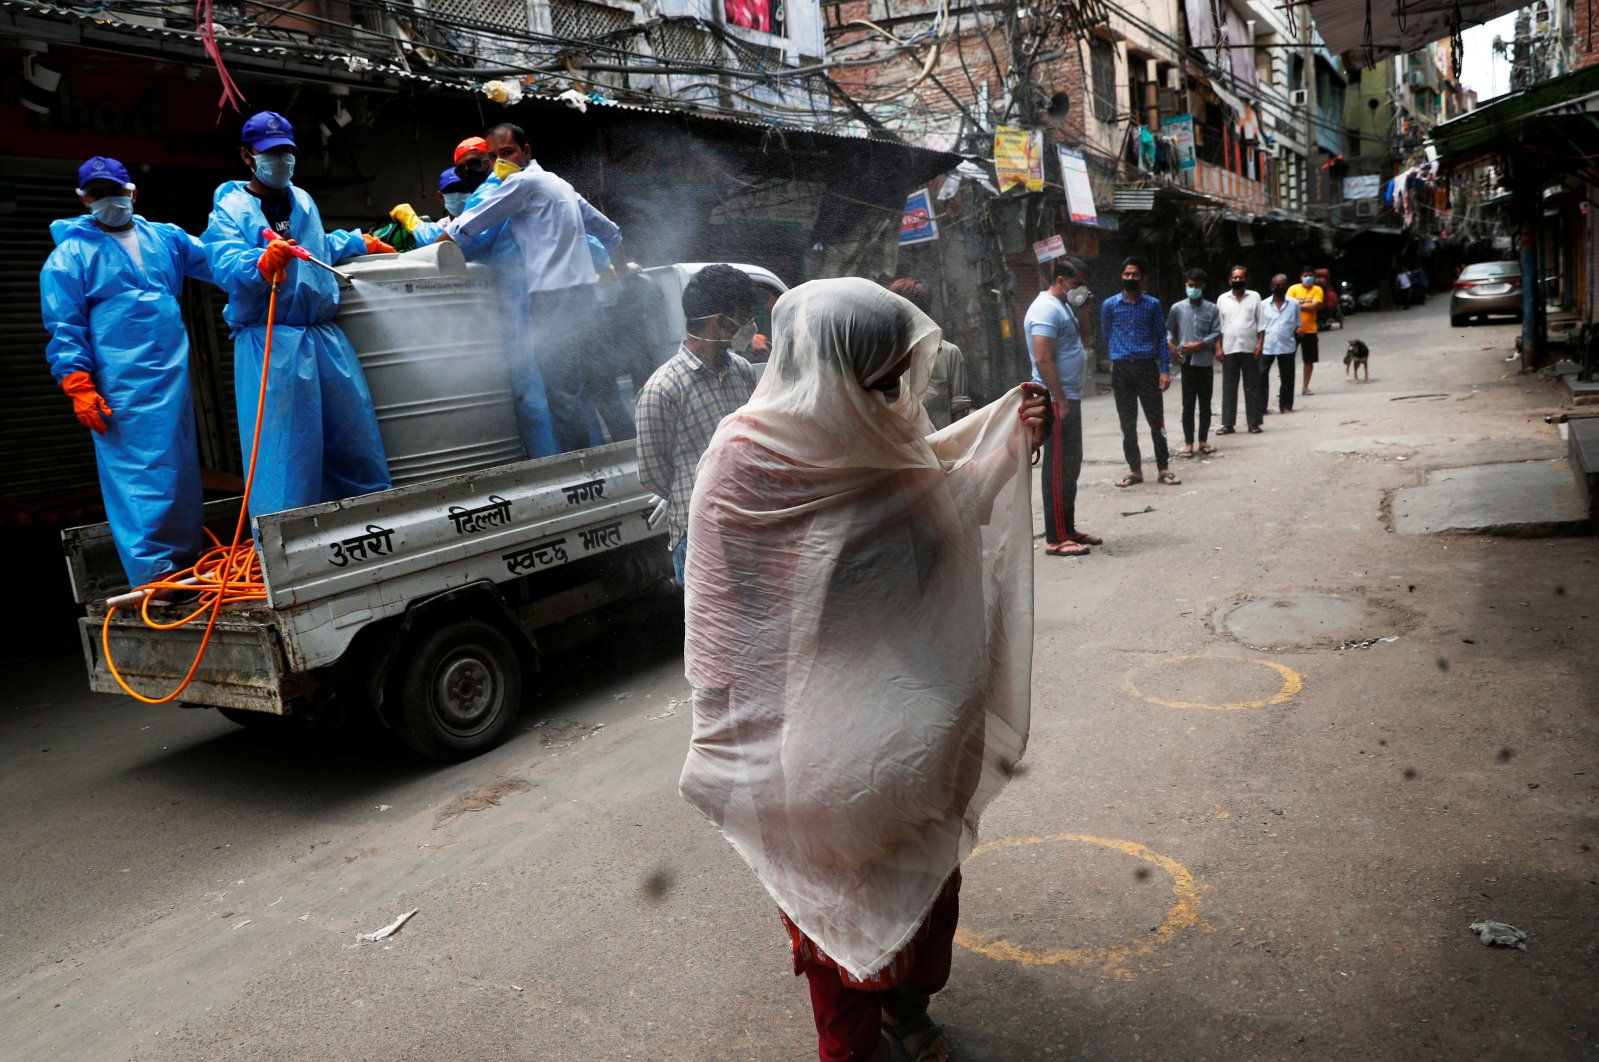 Municipal workers spray disinfectant on the people stand in a queue next to a mobile test station for coronavirus disease (COVID-19) at a residential area in the old quarters of Delhi, India, April 20, 2020. (Reuters Photo)